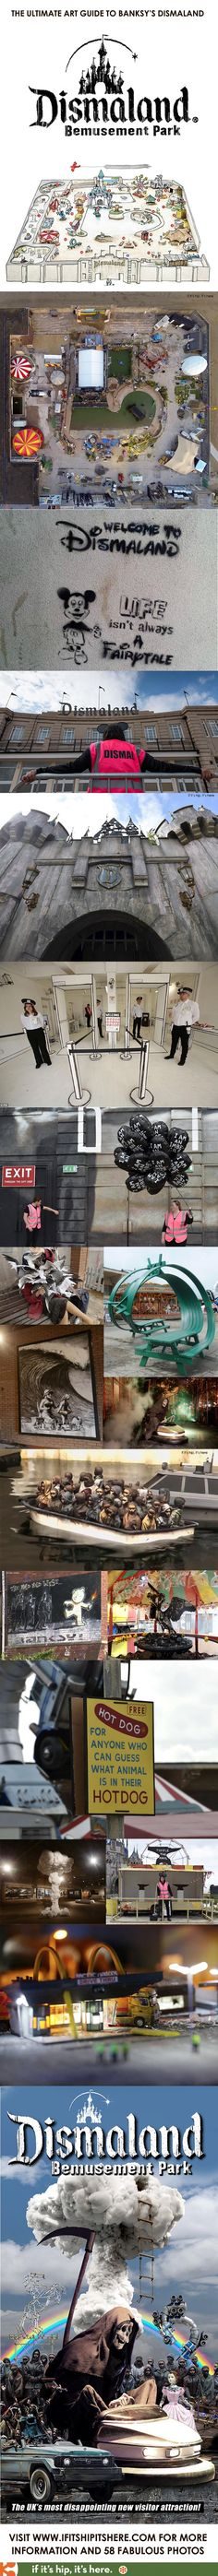 The Ultimate Art Guide to Banksy's Dismaland | http://www.ifitshipitshere.com/the-art-guide-to-dismaland/